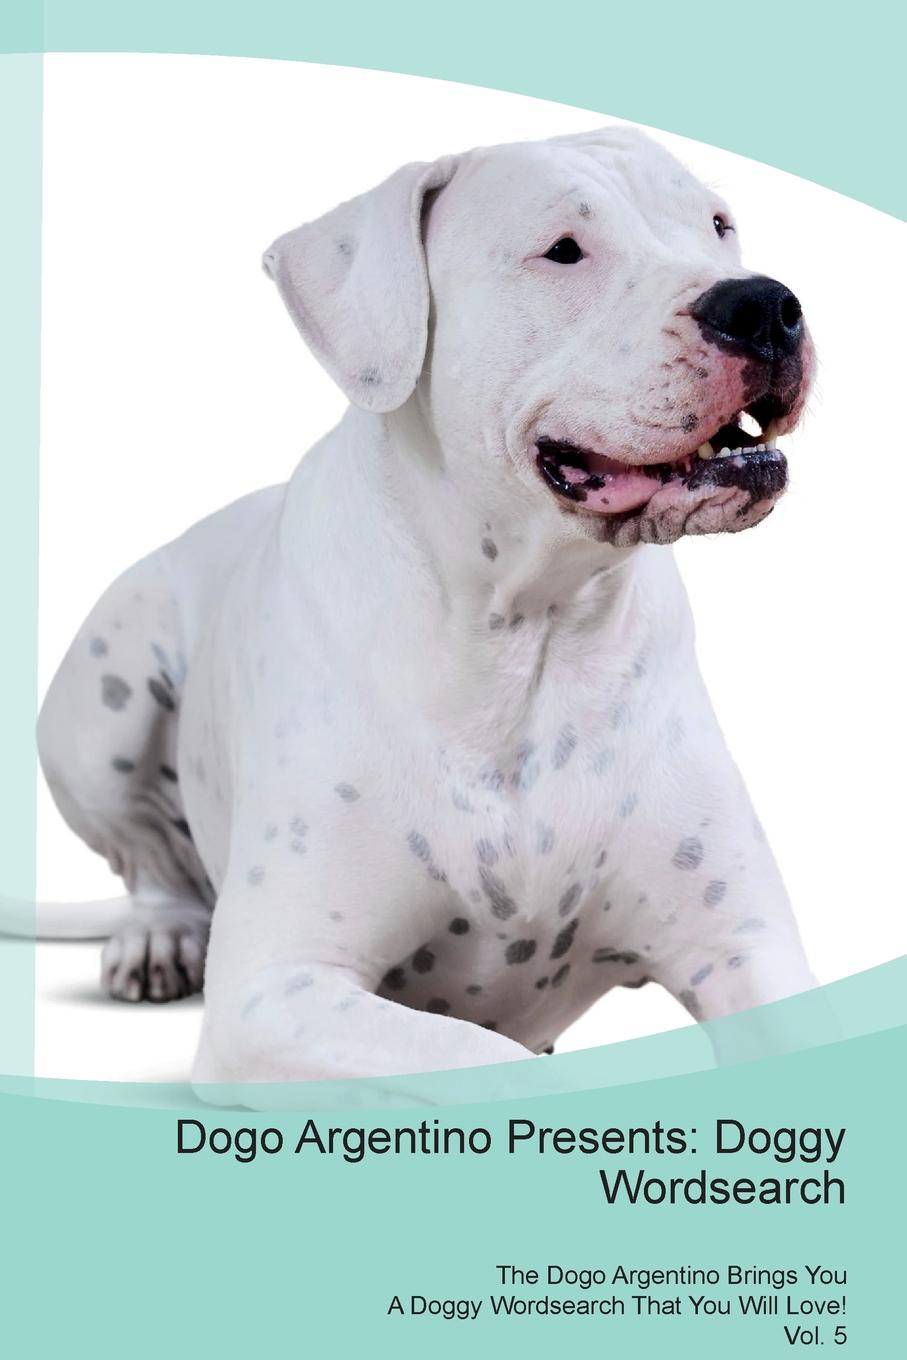 Doggy Puzzles Dogo Argentino Presents. Wordsearch The Brings You A That Will Love! Vol. 5